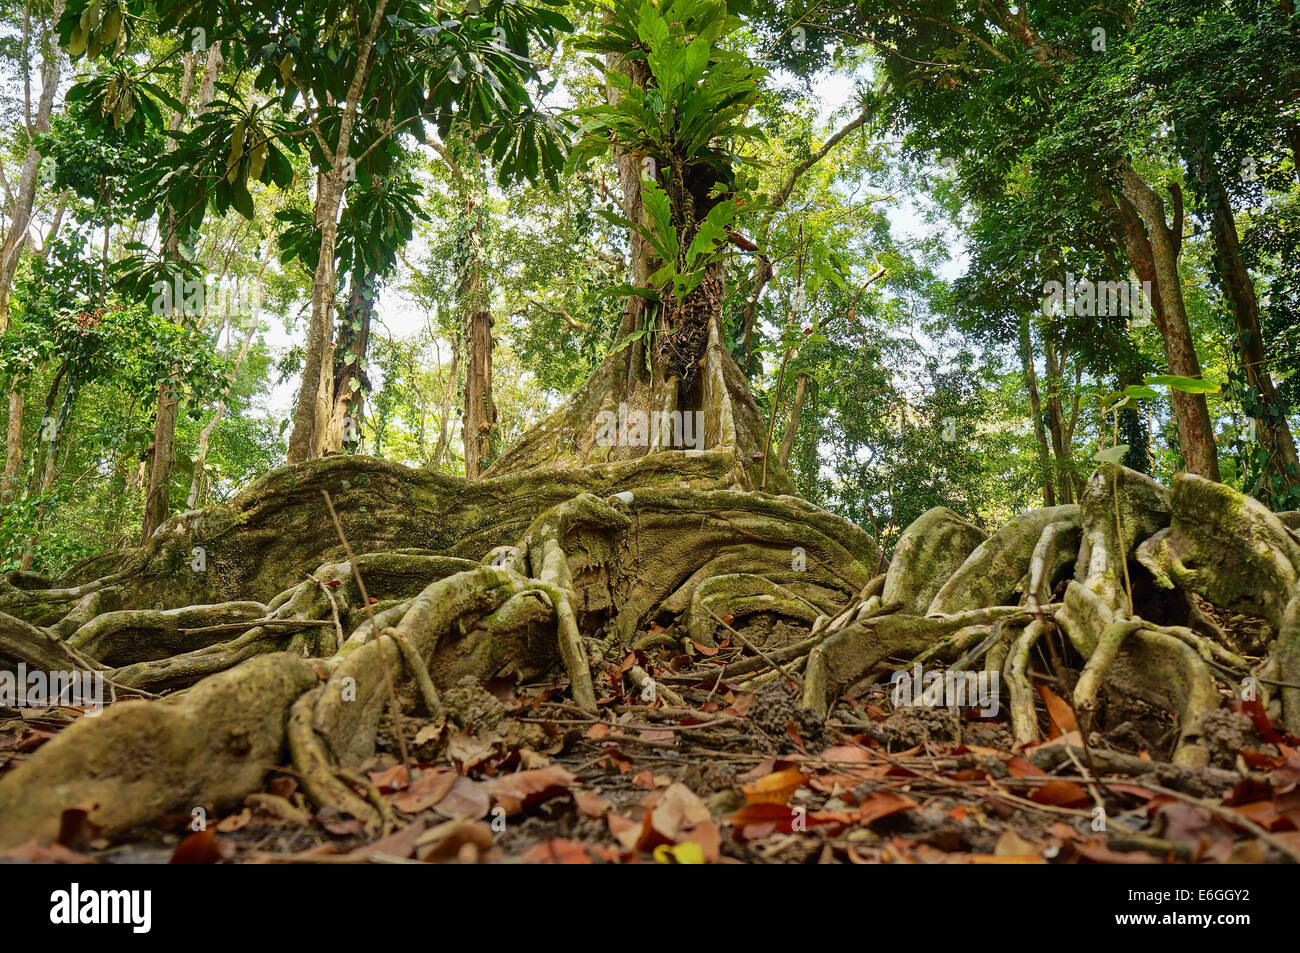 tropical tree and roots in the jungle of Costa Rica - Stock Image